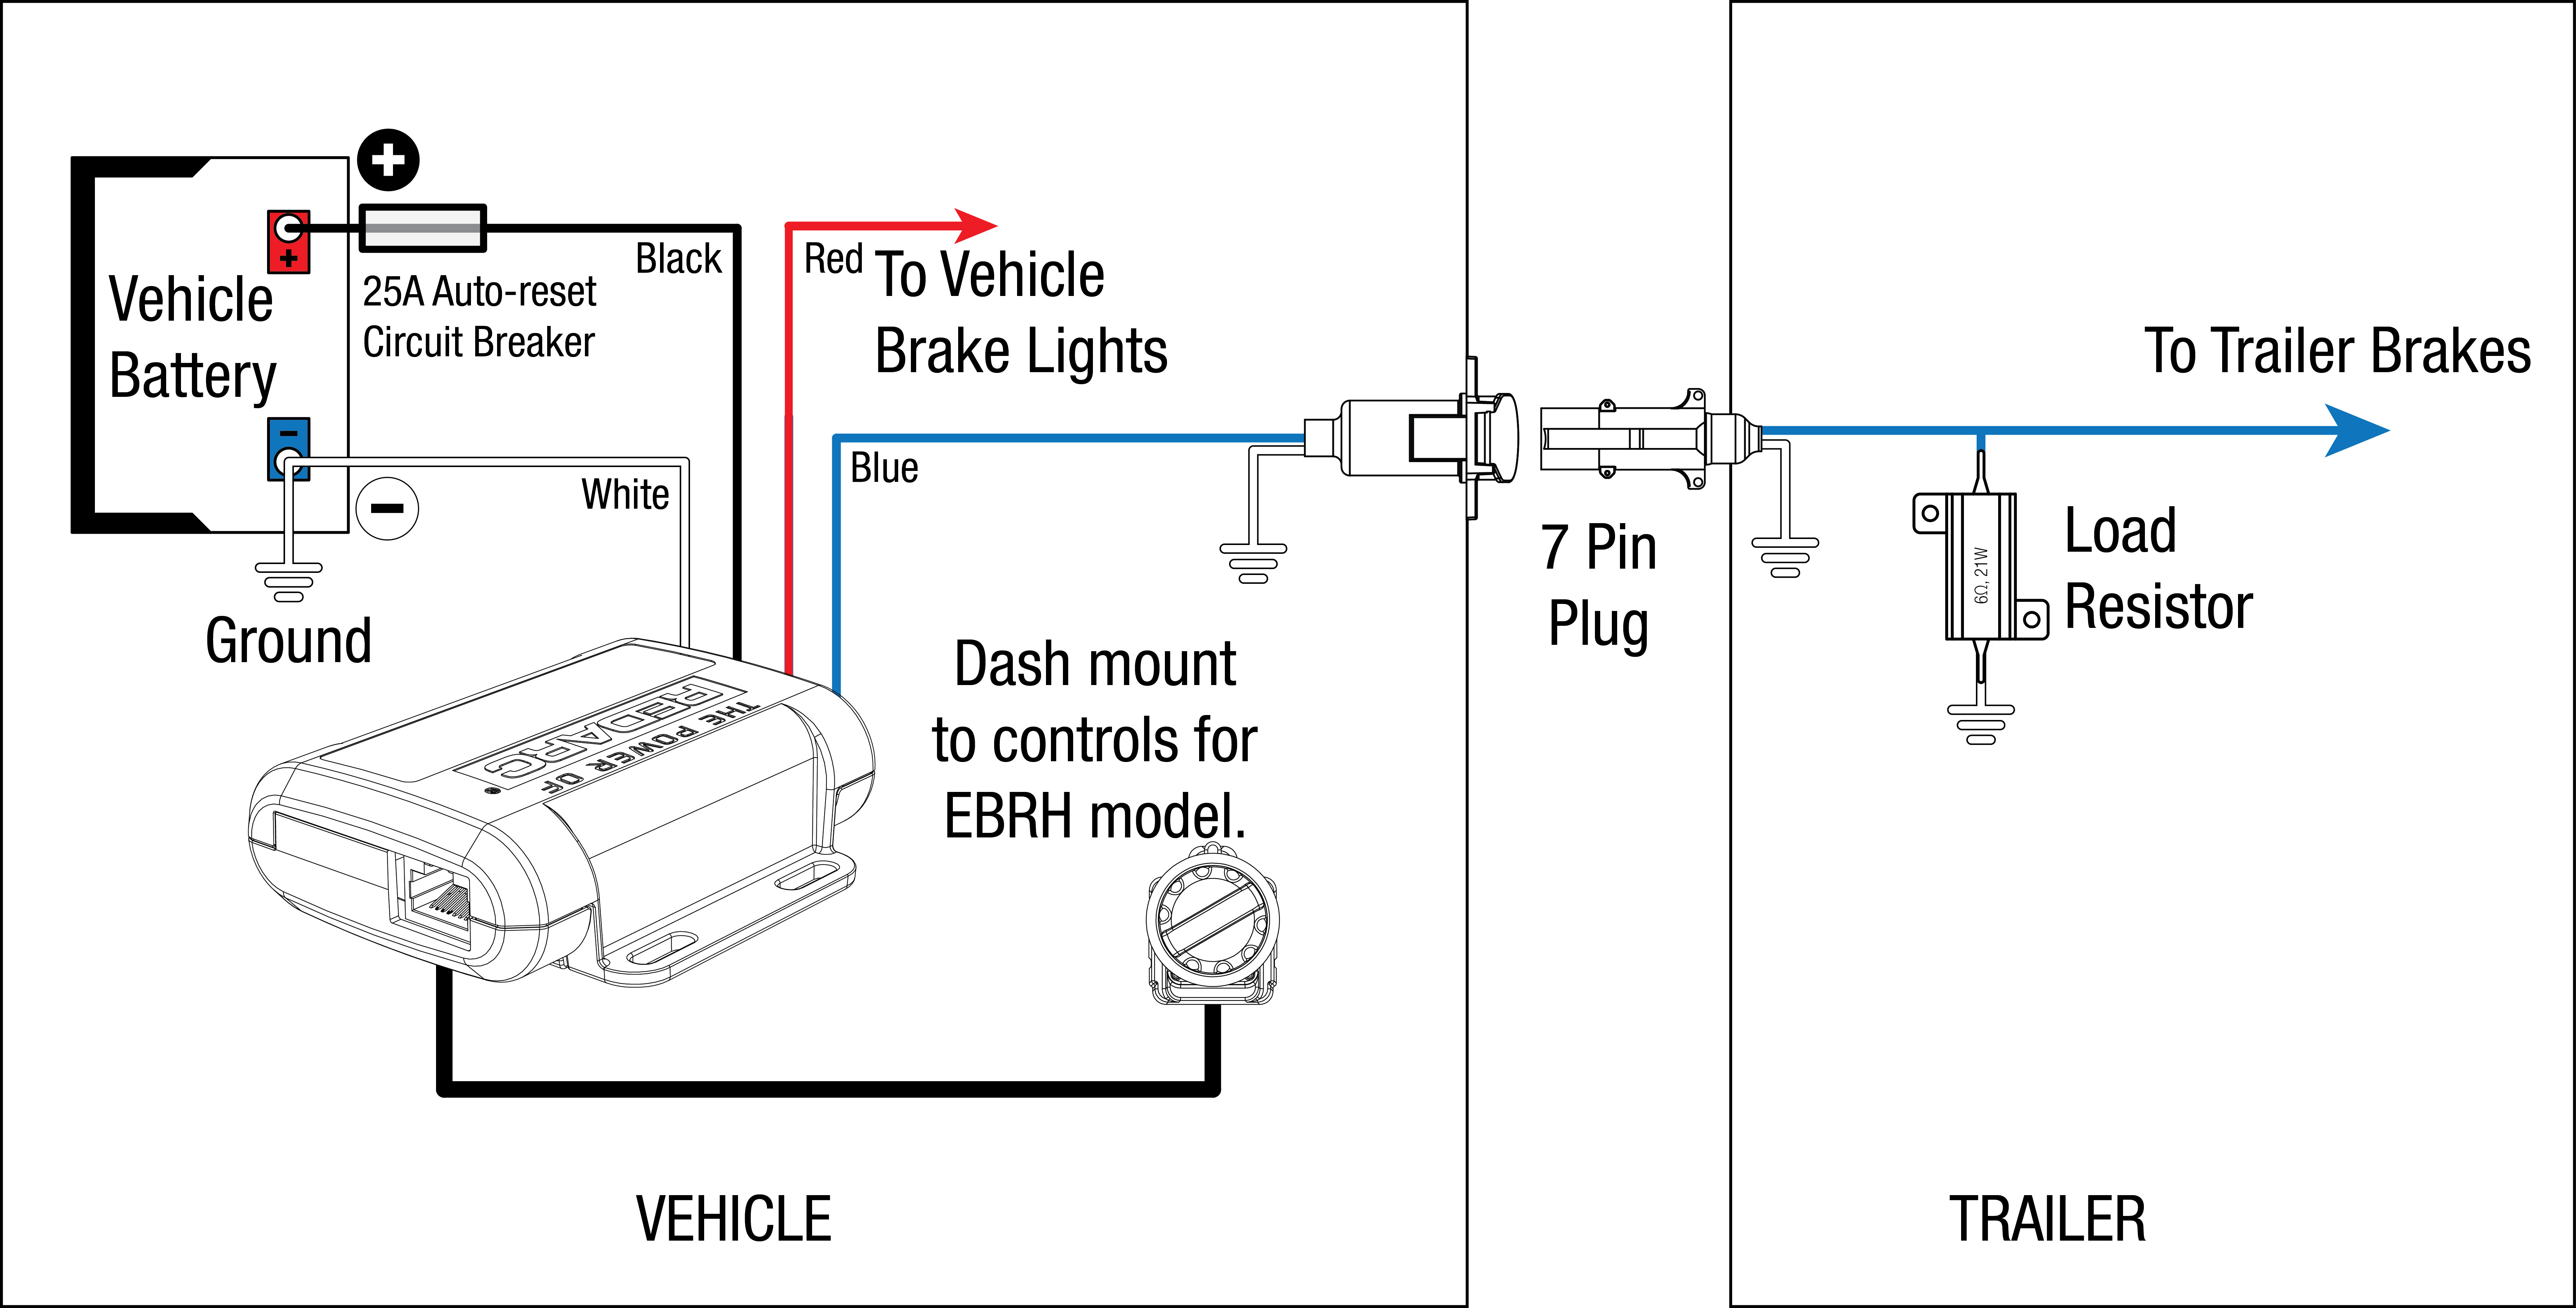 Tow-Pro Electric/hydraulic Braking Systems | Redarc Electronics - Trailer Plug Wiring Diagram With Electric Brakes